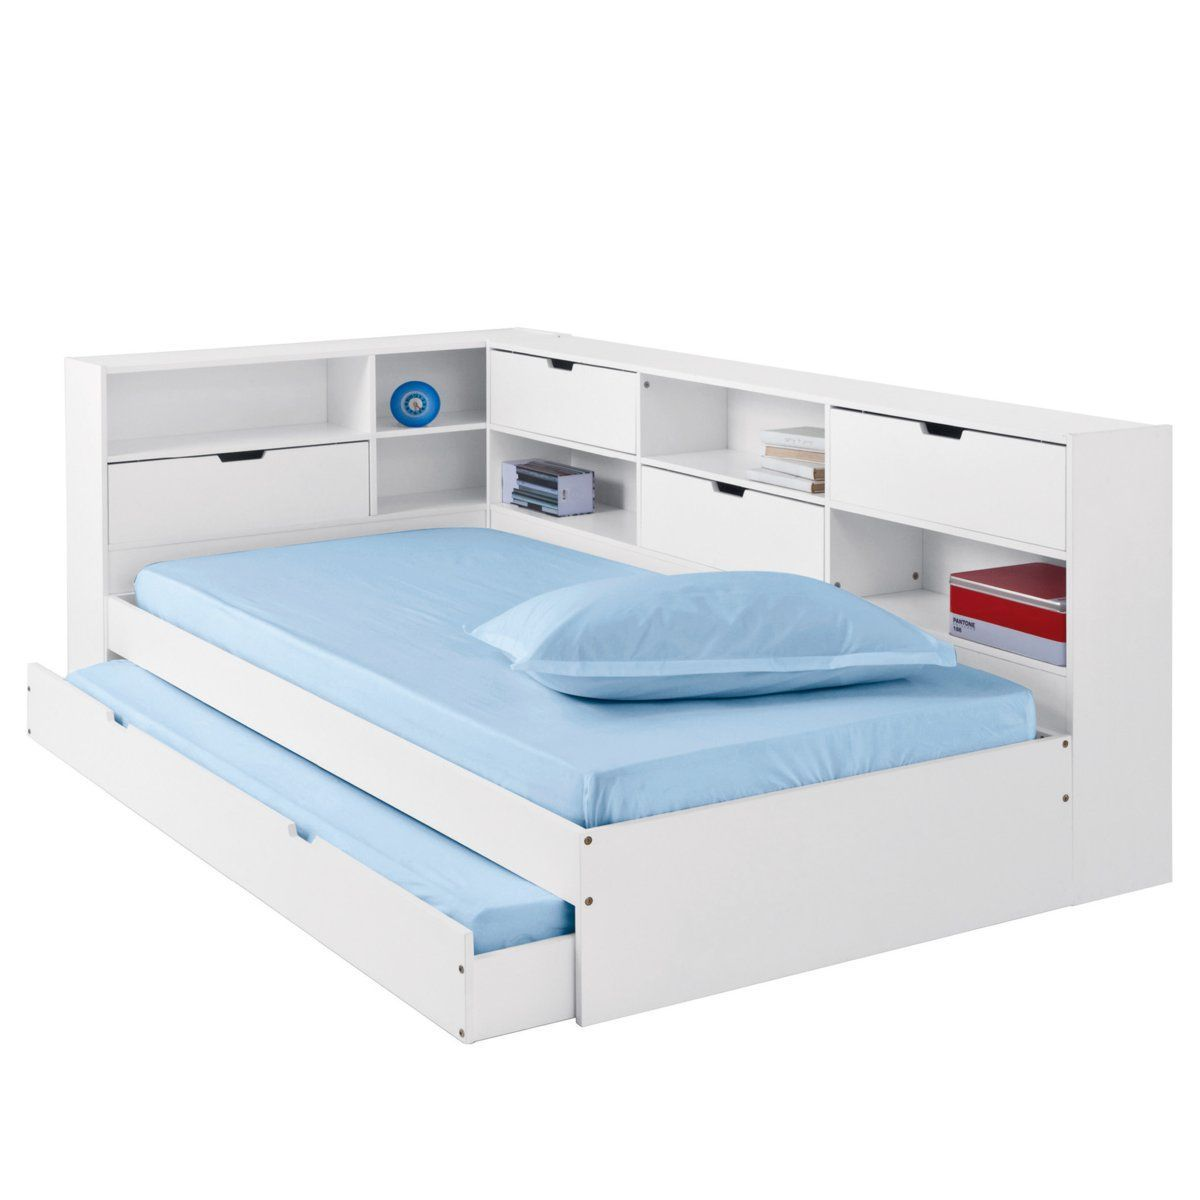 Matelas Mousse 140x190 2 Lit Gigogne 140x190 Avec Rangement Lit Gigogne Ikea Yourscoops Deco Bed Storage Drawers Trundle Bed With Storage Trundle Bed